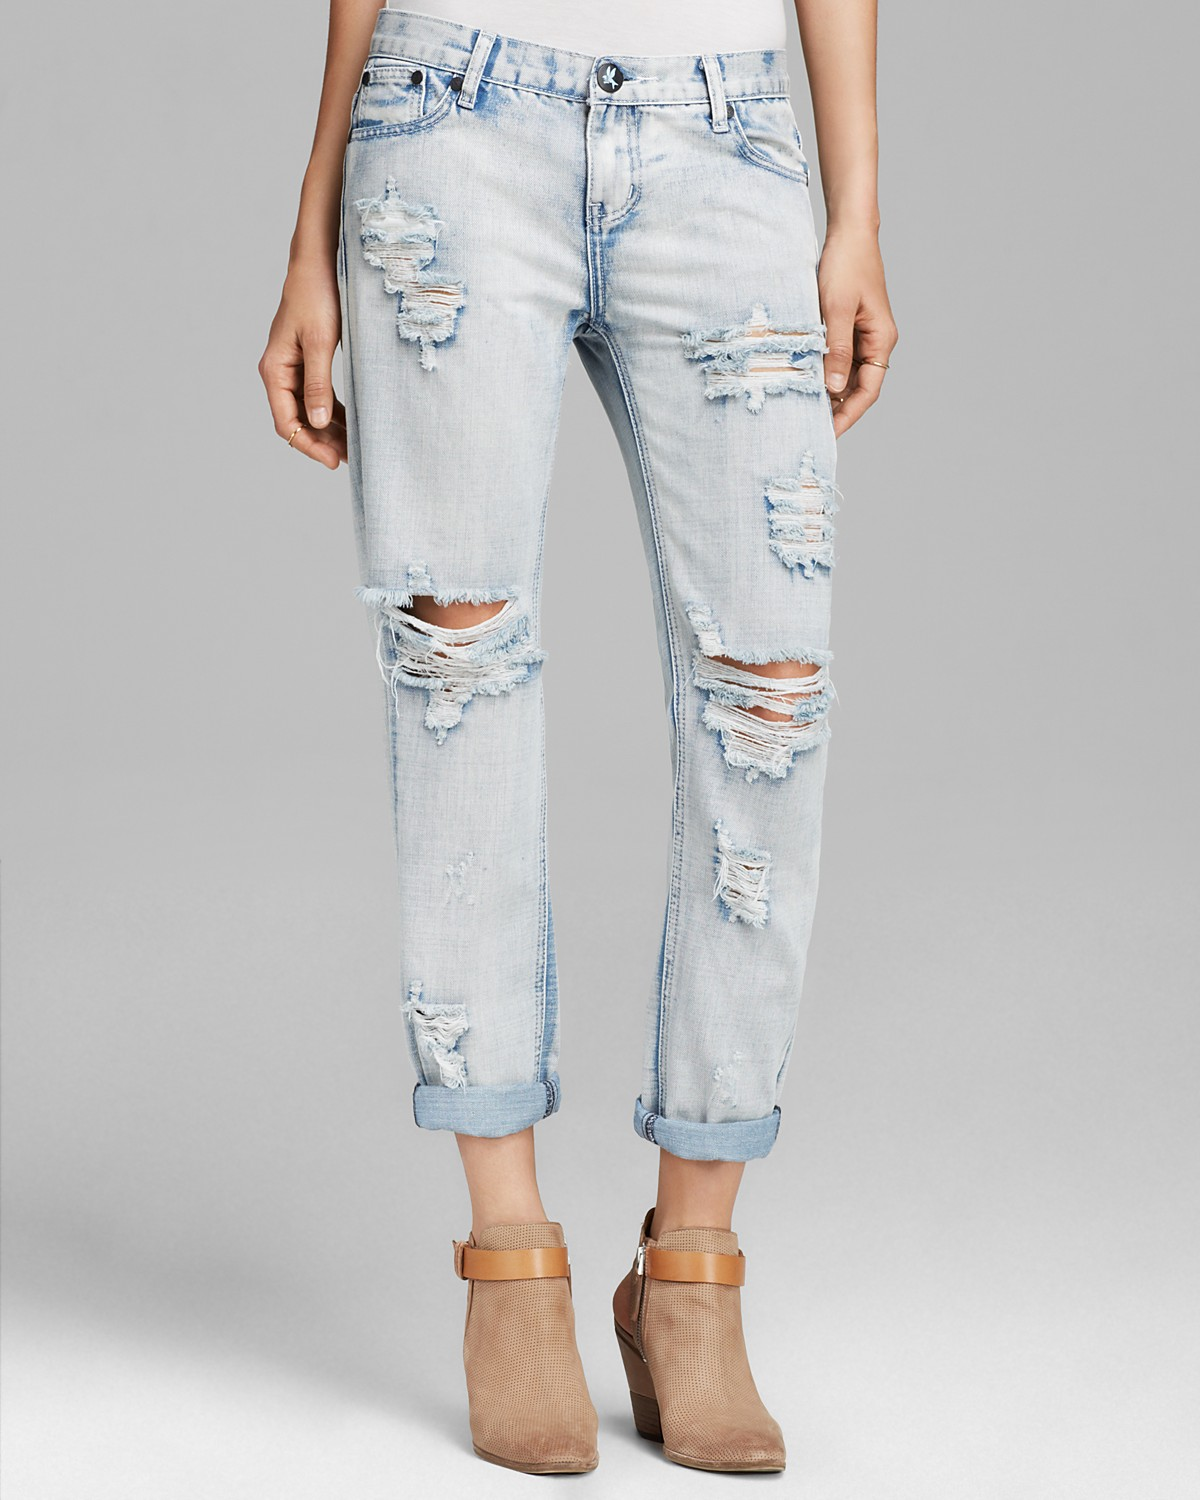 One Teaspoon Jeans - Awesome Baggies in Fiasco | Bloomingdale's